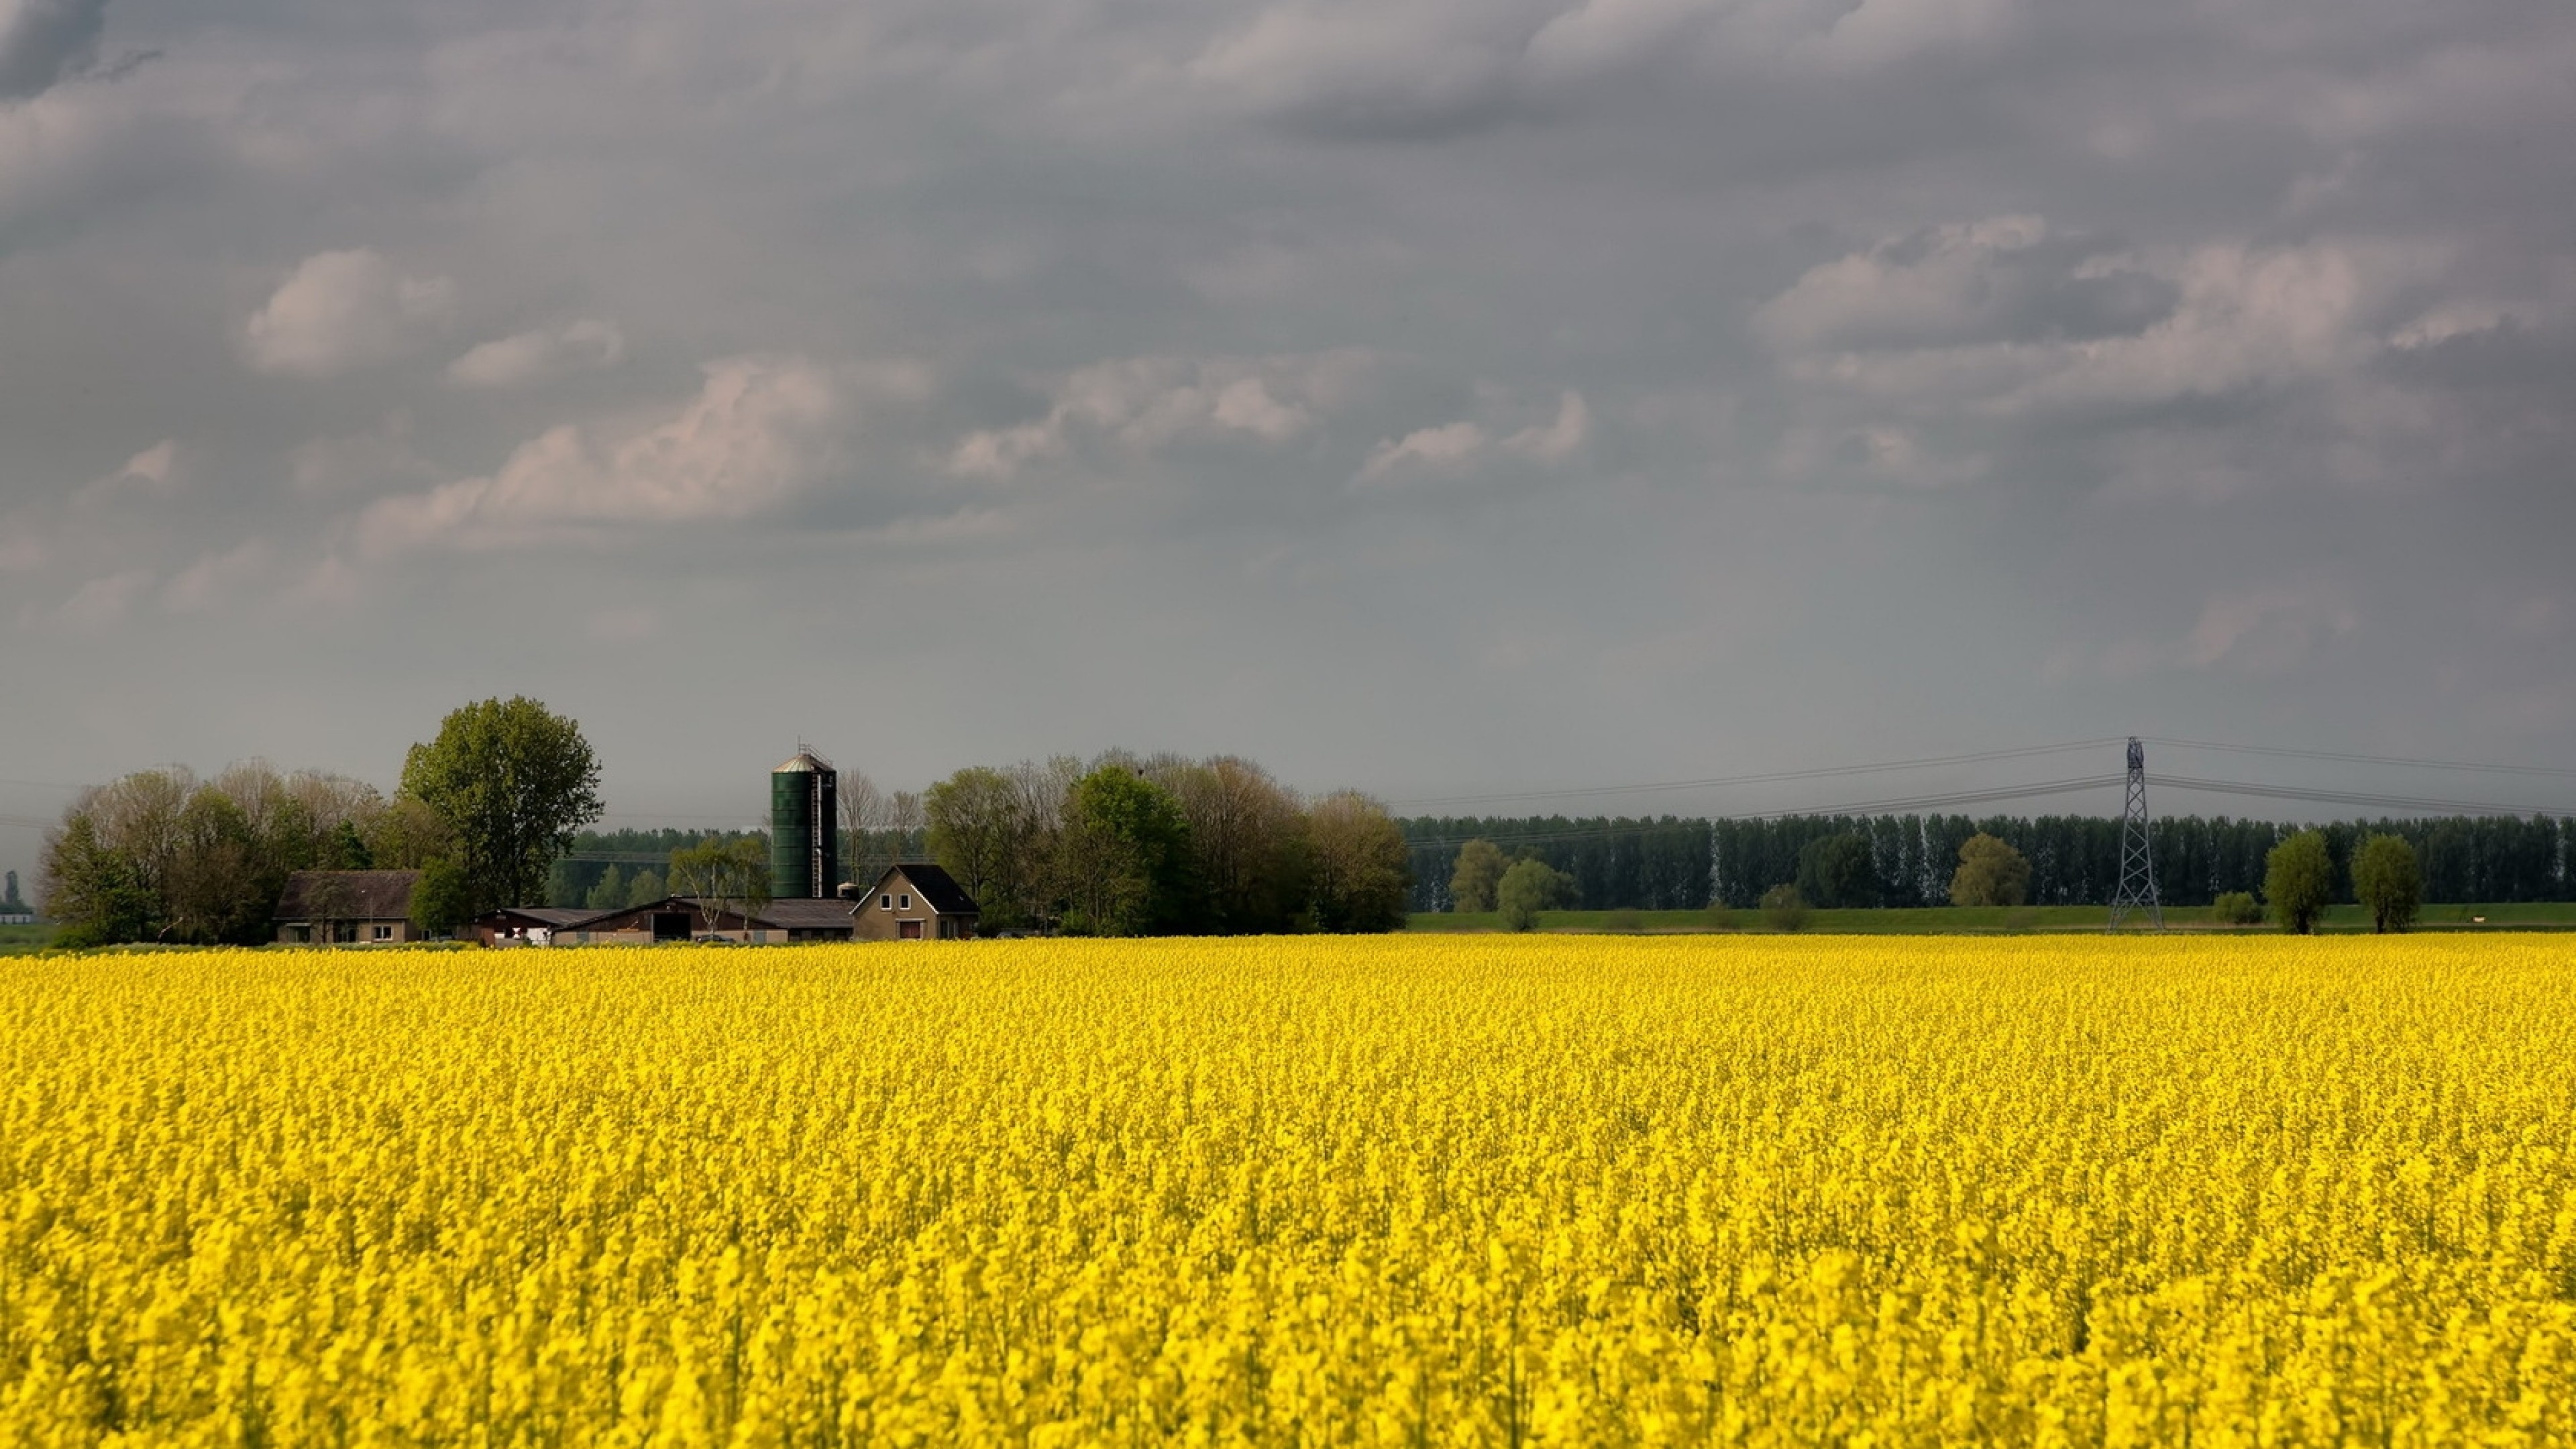 Wallpaper field, flowers, yellow, farm, agriculture, cloudy